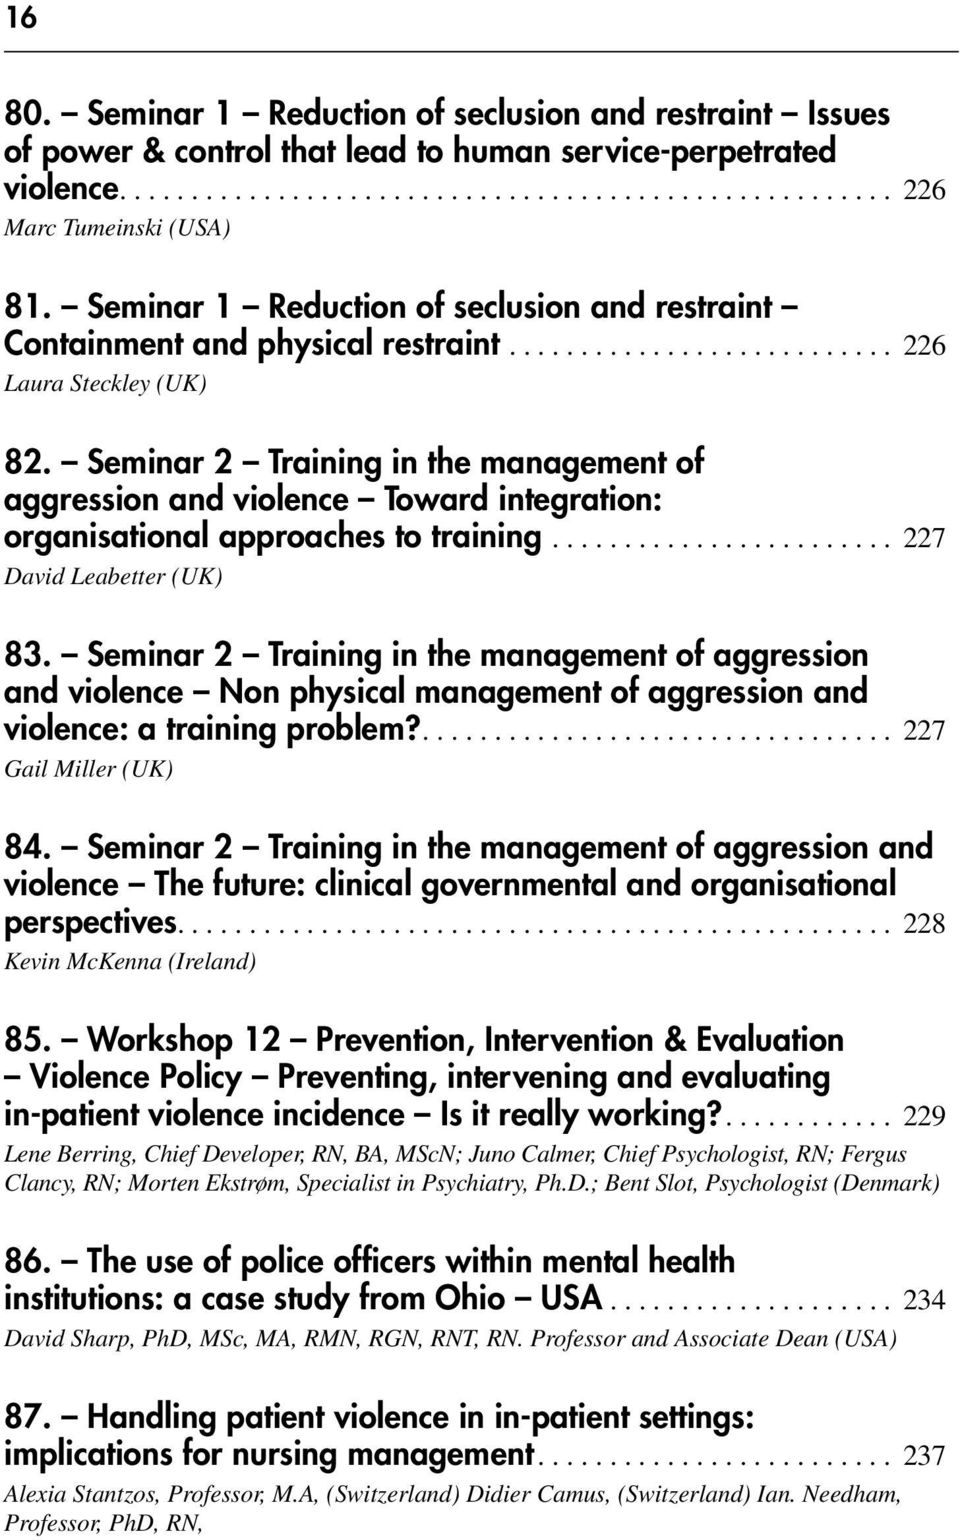 Seminar 2 Training in the management of aggression and violence Toward integration: organisational approaches to training........................ 227 David Leabetter (UK) 83.